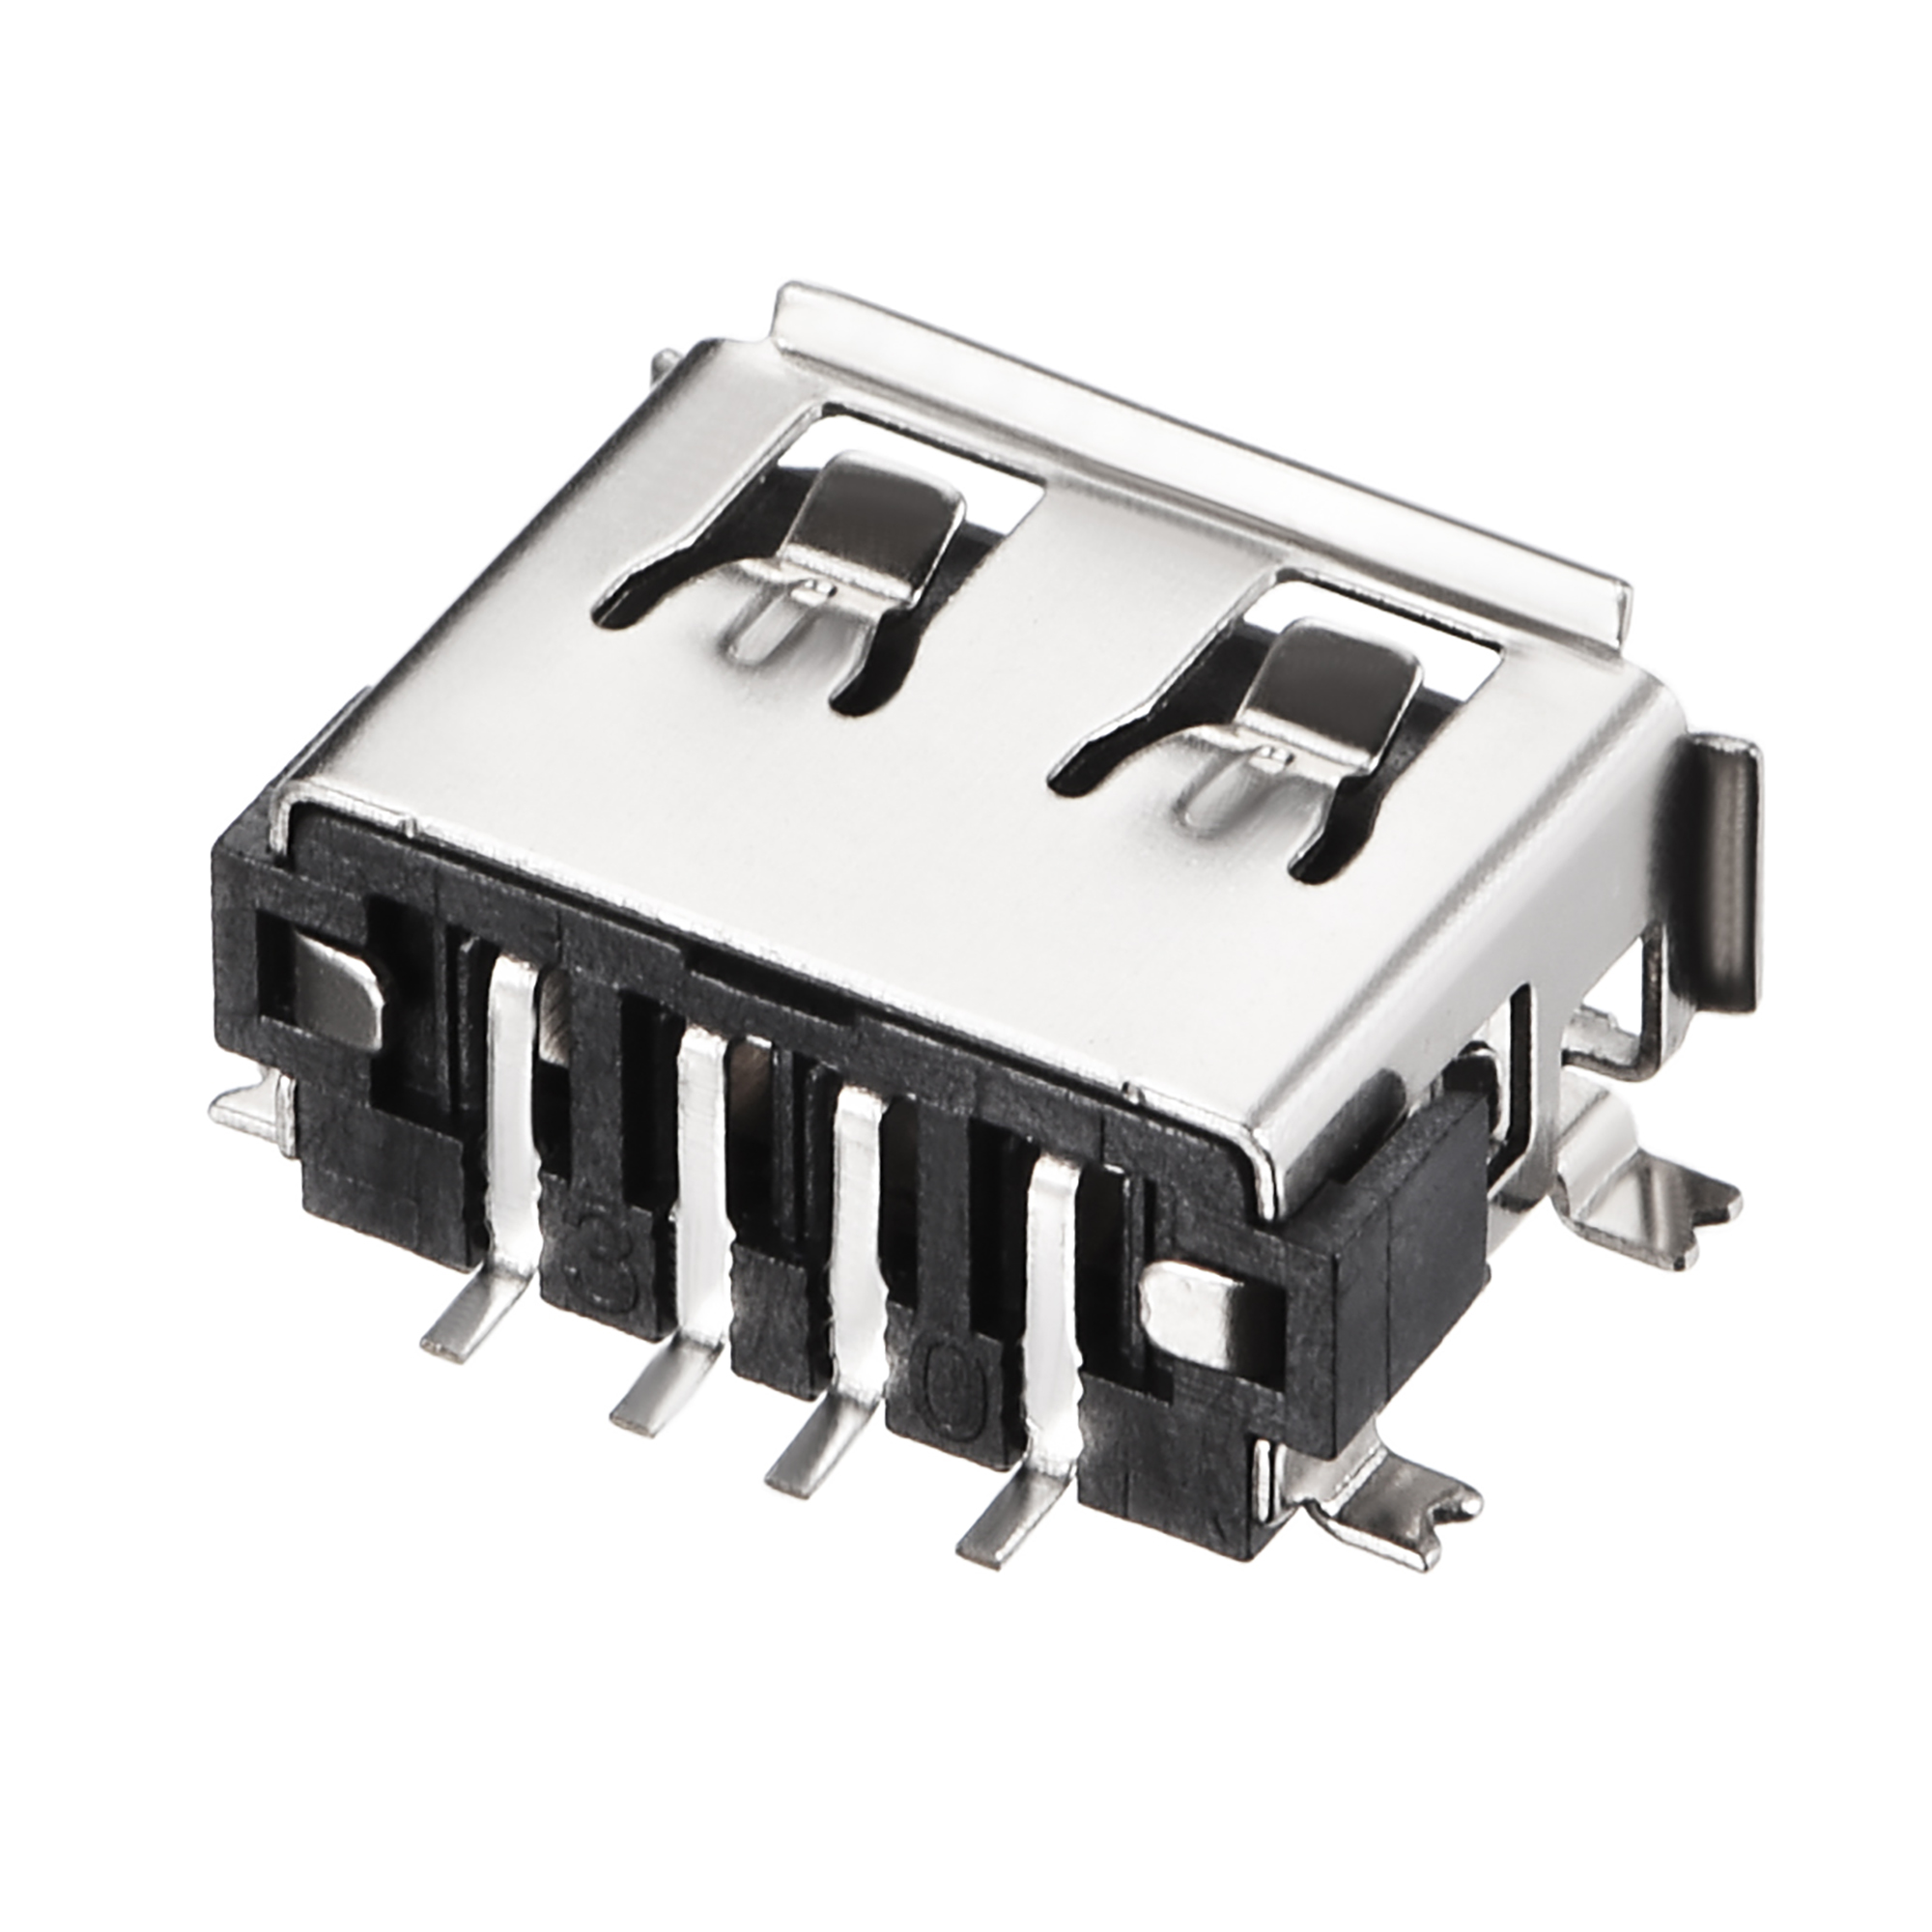 PCB USB Connector 2.0 A Type 4P 10mm Short Body SMT SMD 10pcs - image 1 of 4